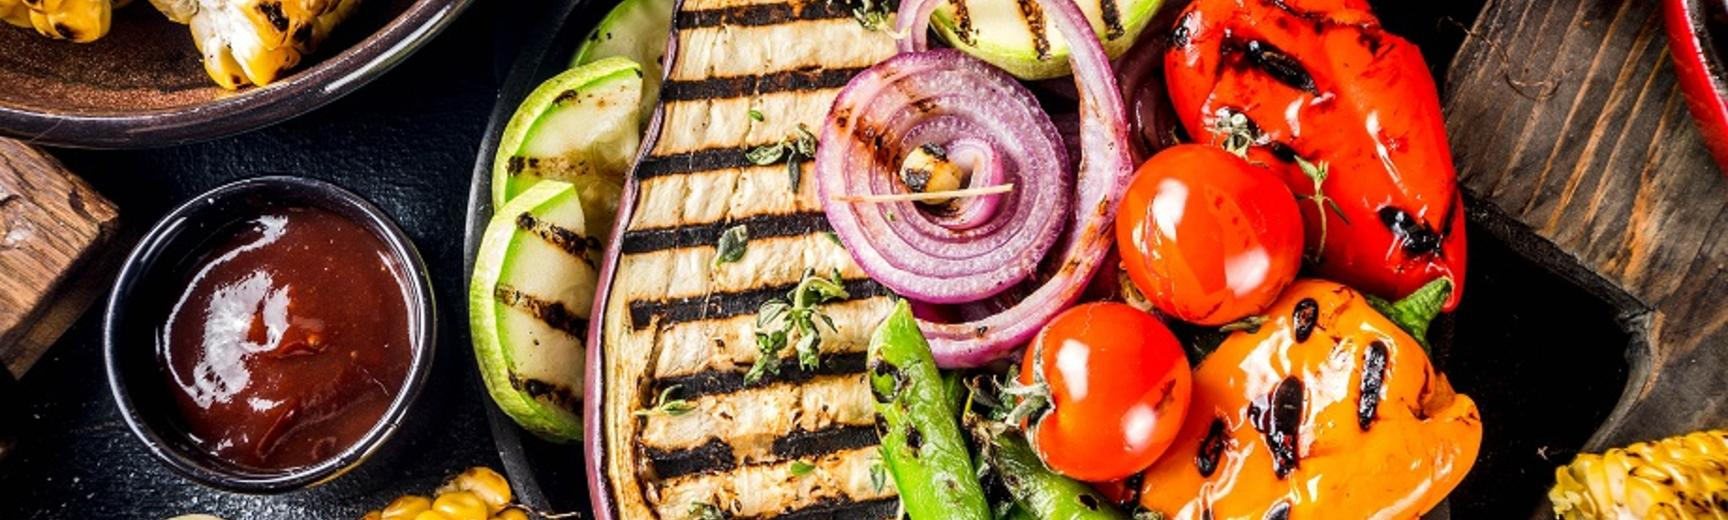 Assortment of colourful grilled and barbecued vegetables on a table